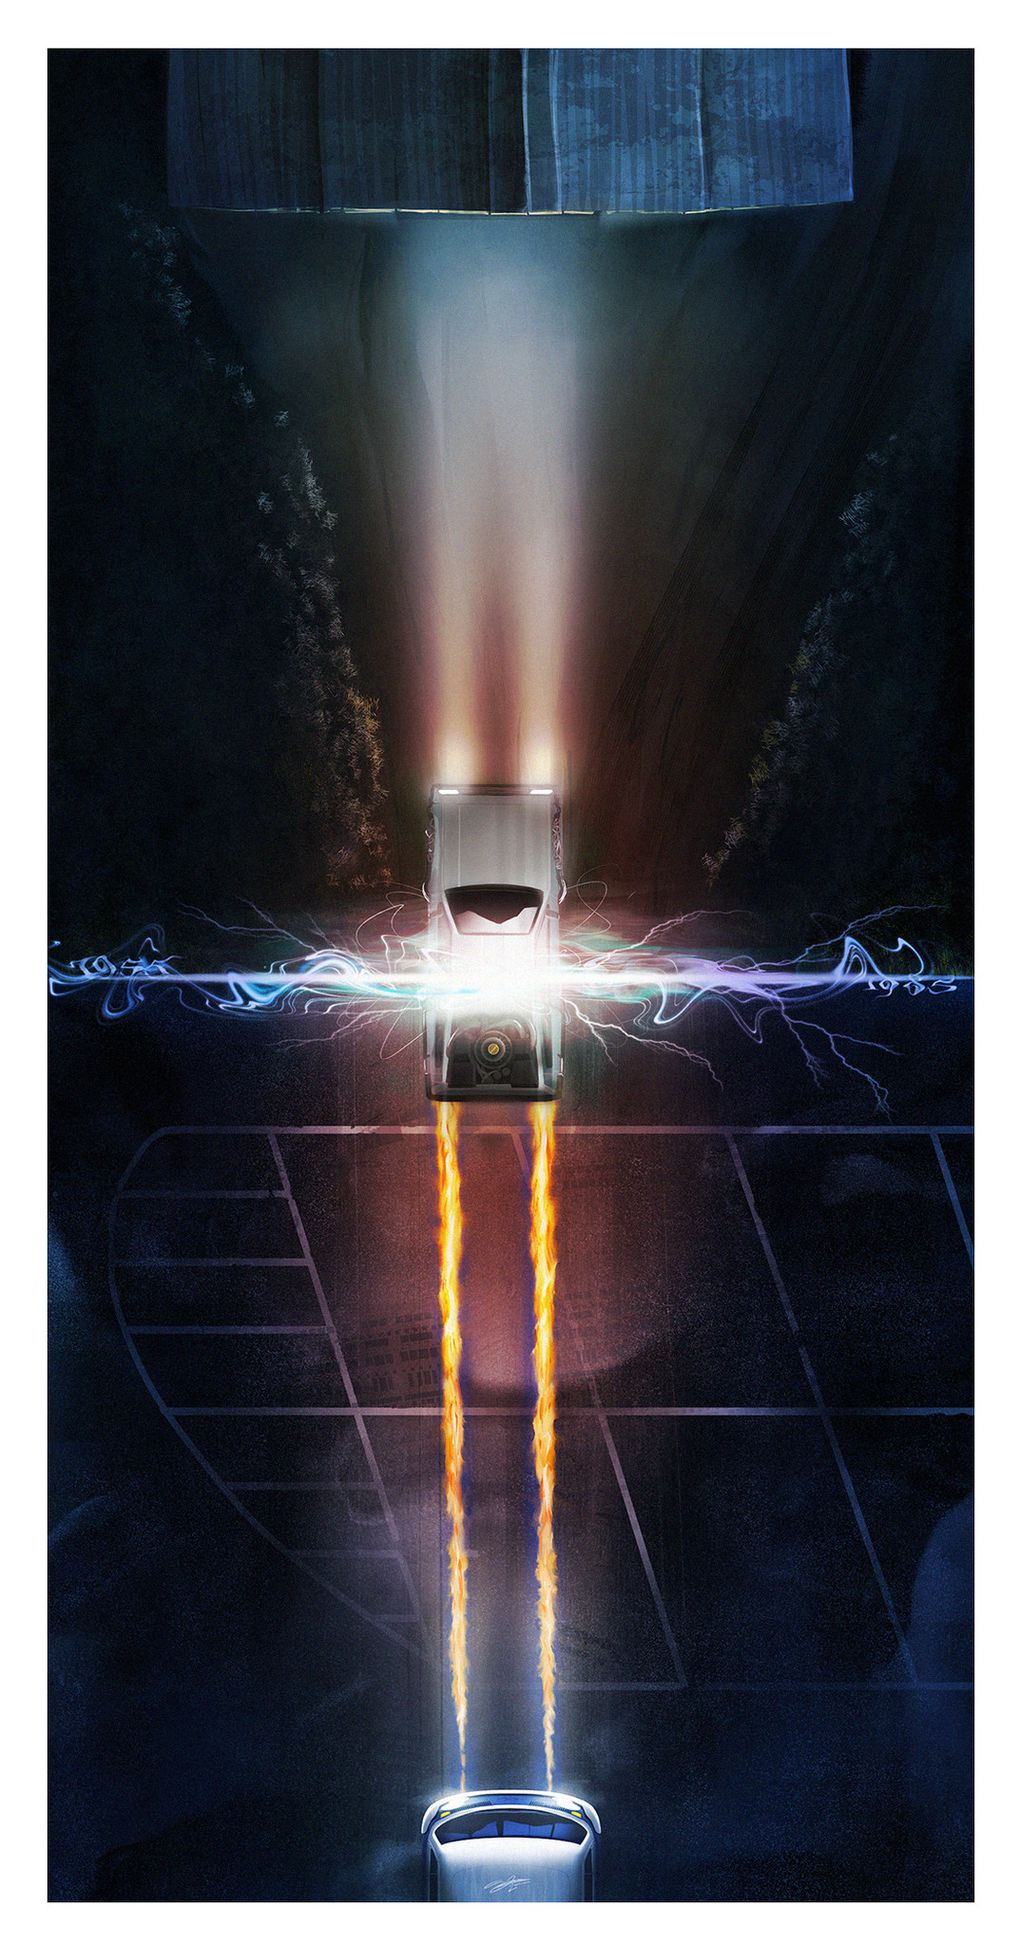 Iphone X Verge Wallpaper These Back To The Future Posters Show Time Travel In An